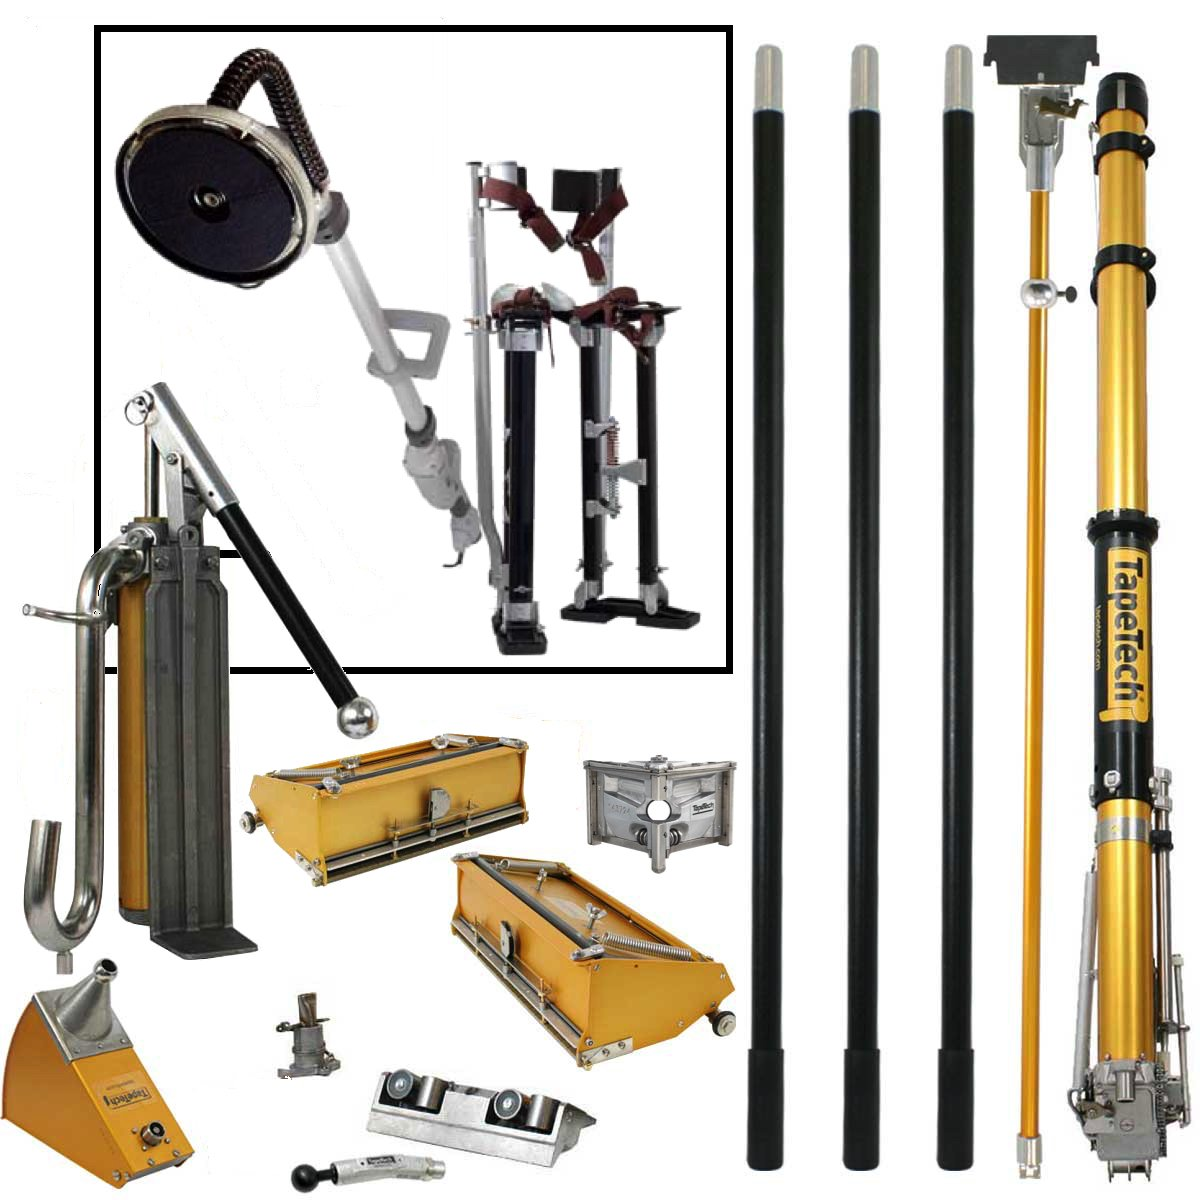 TapeTech Full Drywall Taping and Finishing Tool Set with FREE STILTS and 9'' Disc POWER SANDER by TapeTech